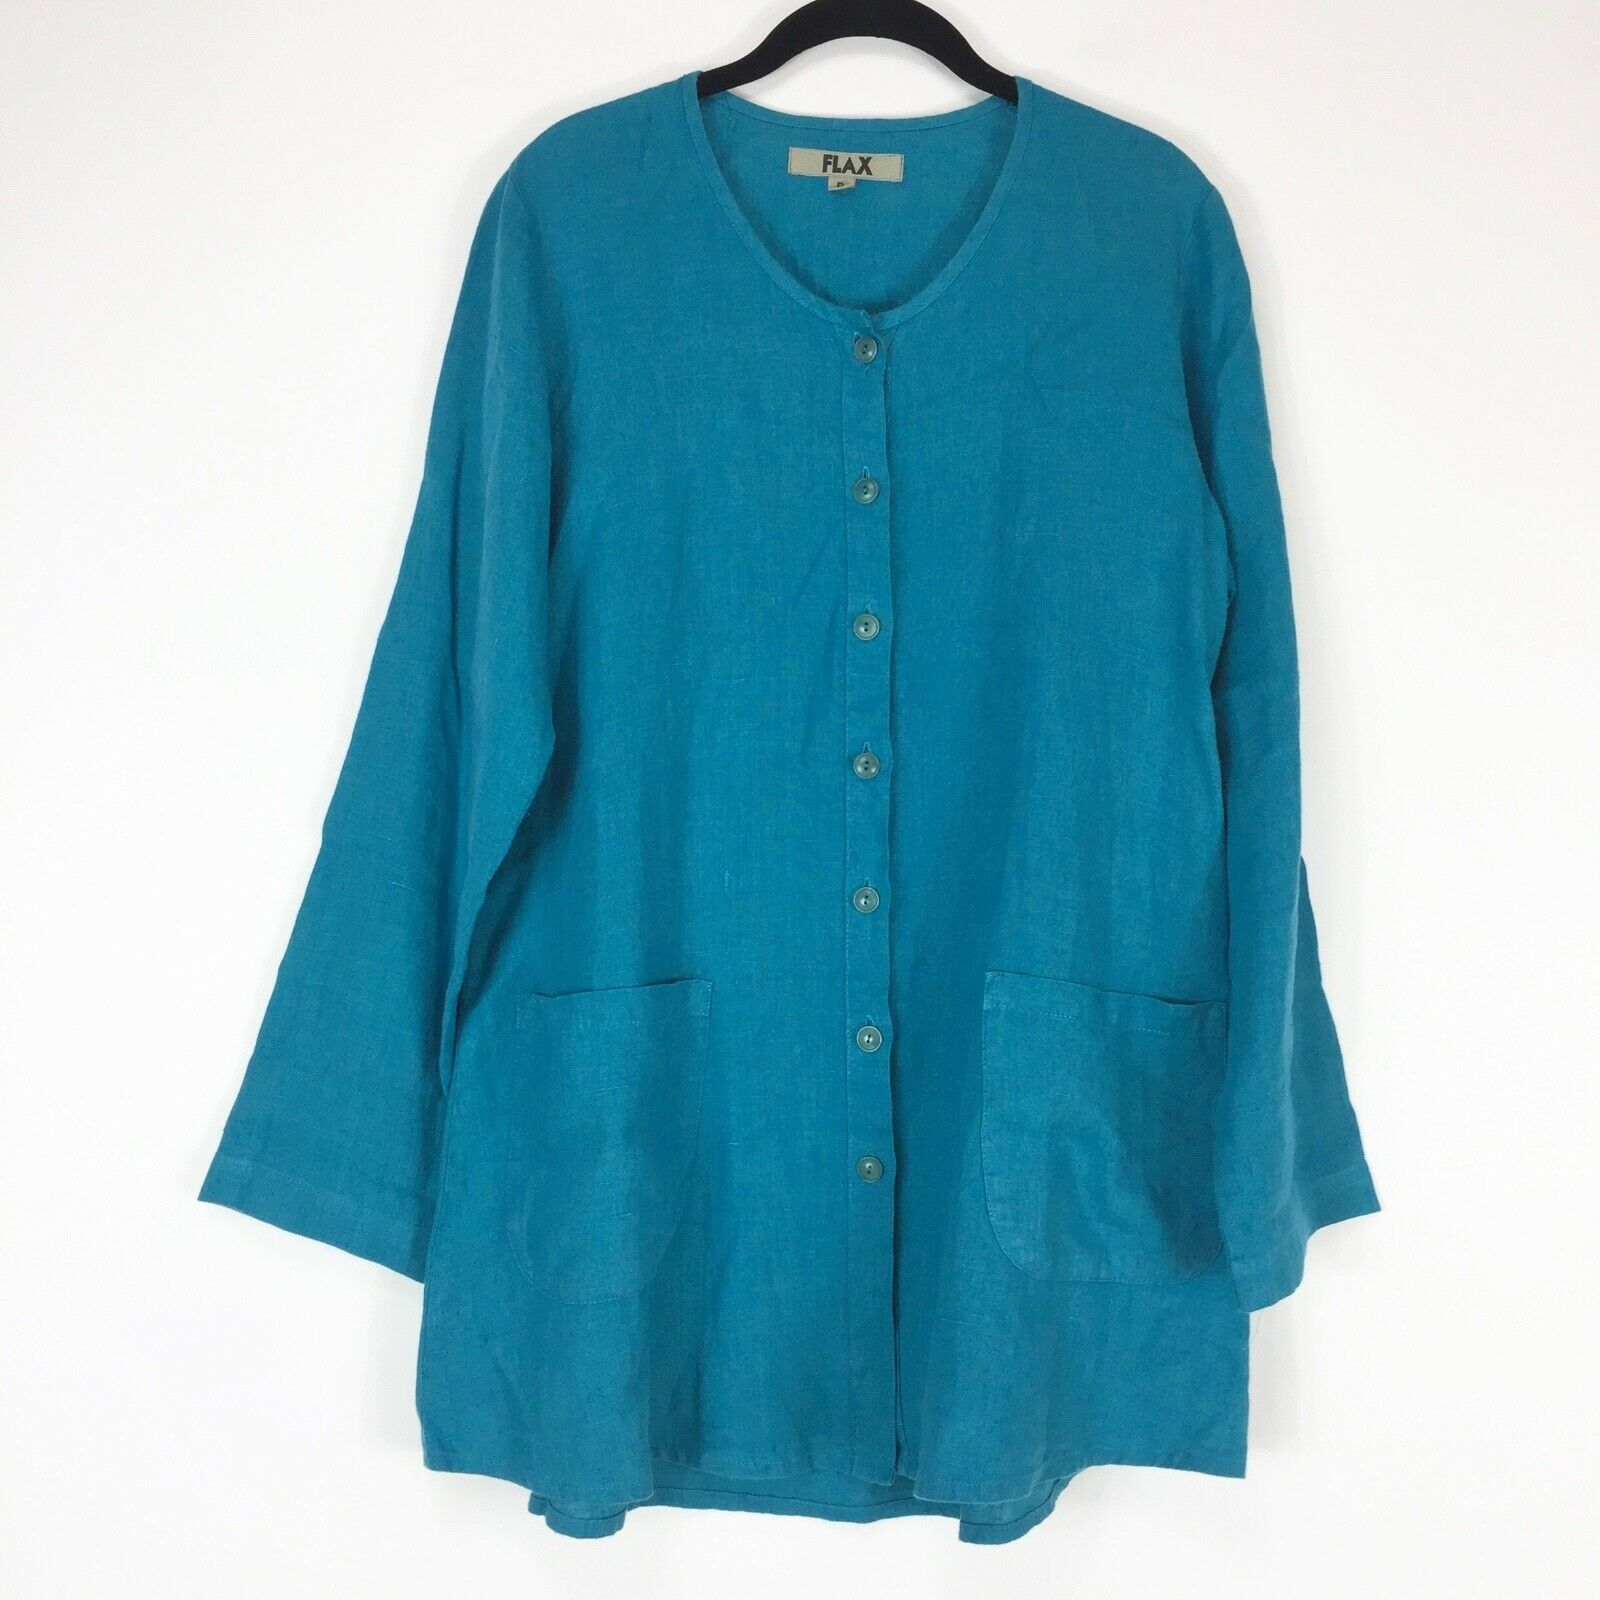 Flax Tunic Top Blouse Woherren P Small Button Front Pockets Turquoise Lagenlook